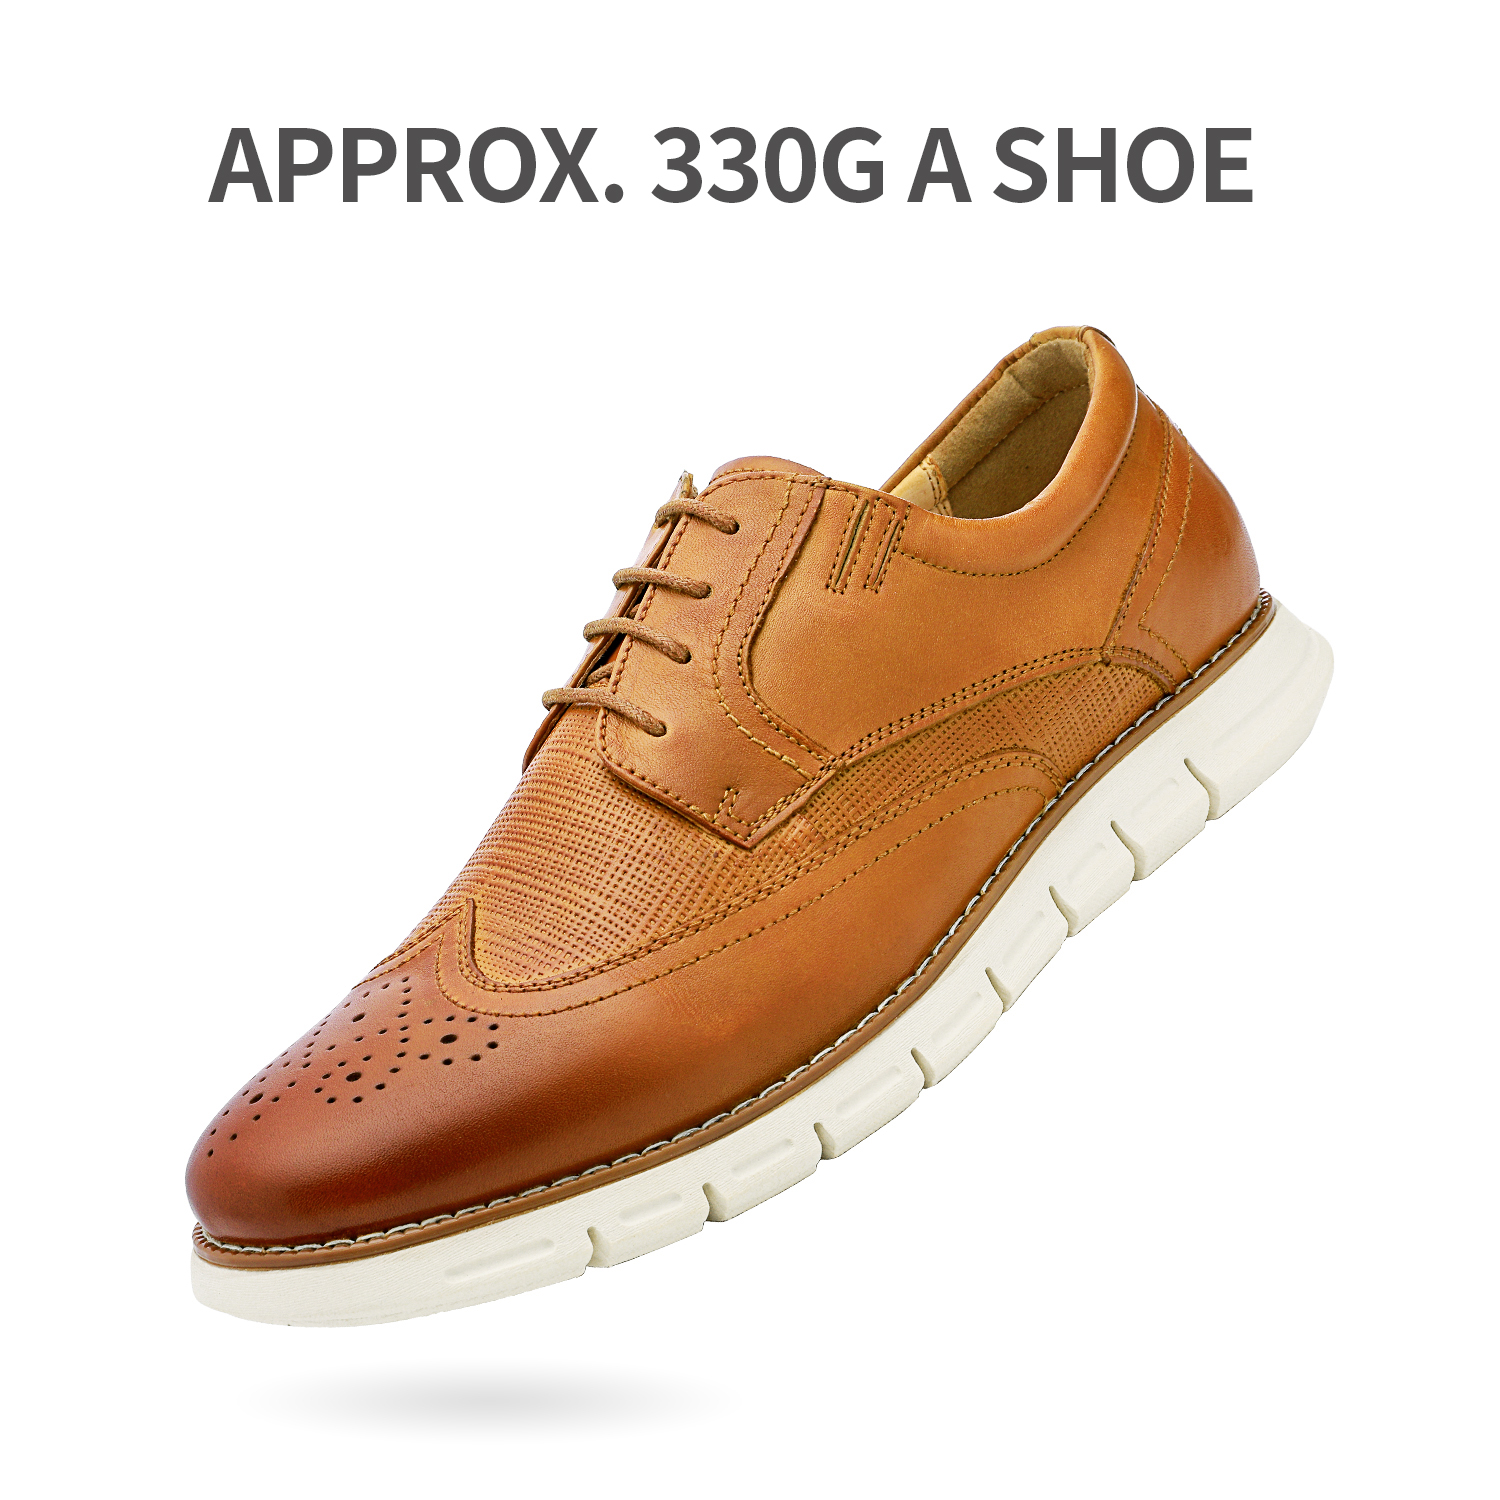 Men-s-Genuine-Leather-Casual-Formal-Sneakers-Lace-up-Business-Oxford-Dress-Shoes thumbnail 19